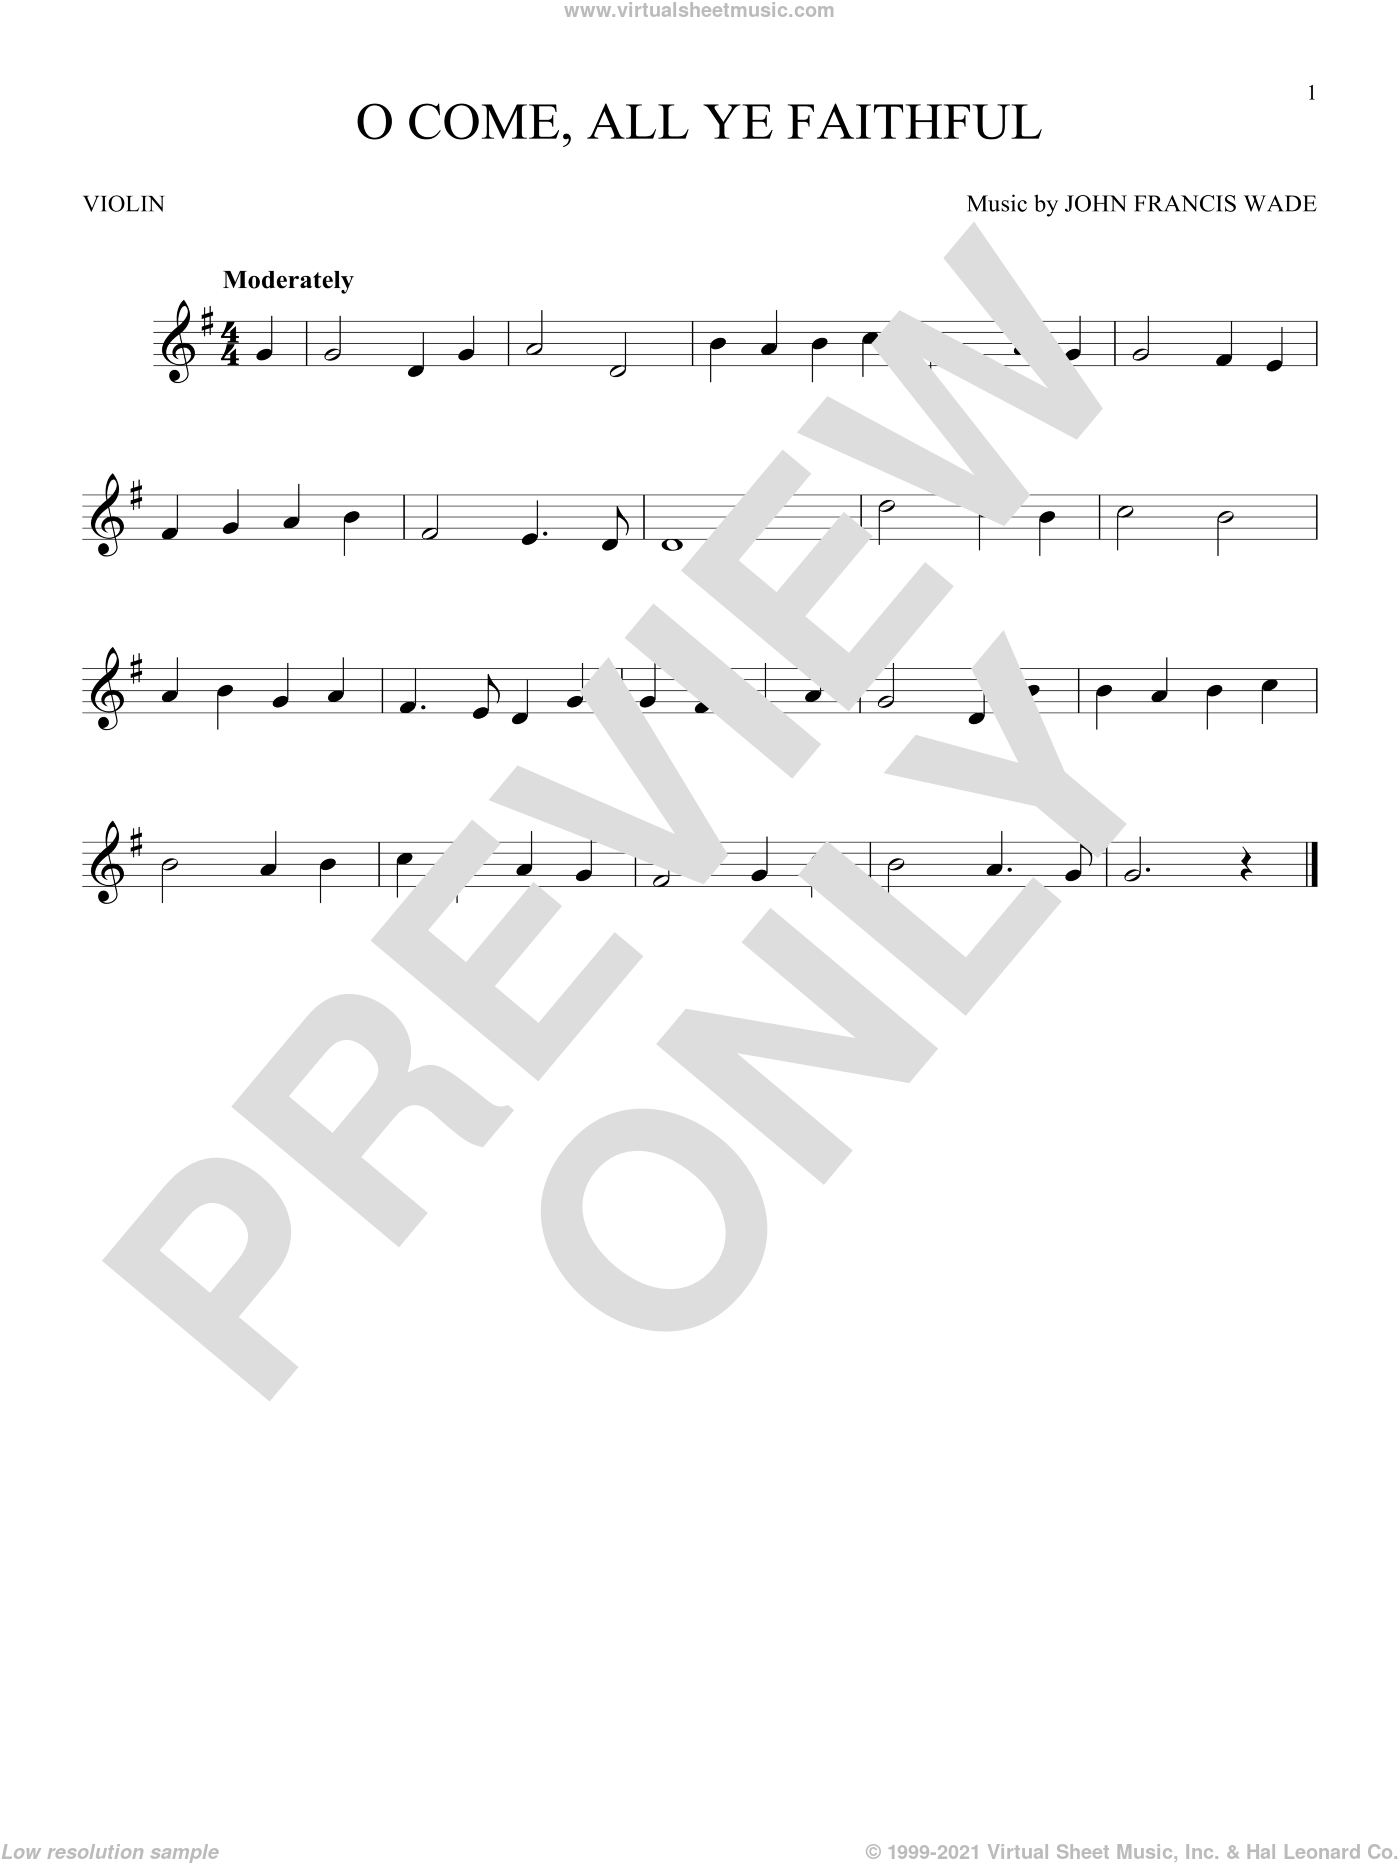 O Come, All Ye Faithful sheet music for violin solo by John Francis Wade and Frederick Oakeley (English), intermediate skill level